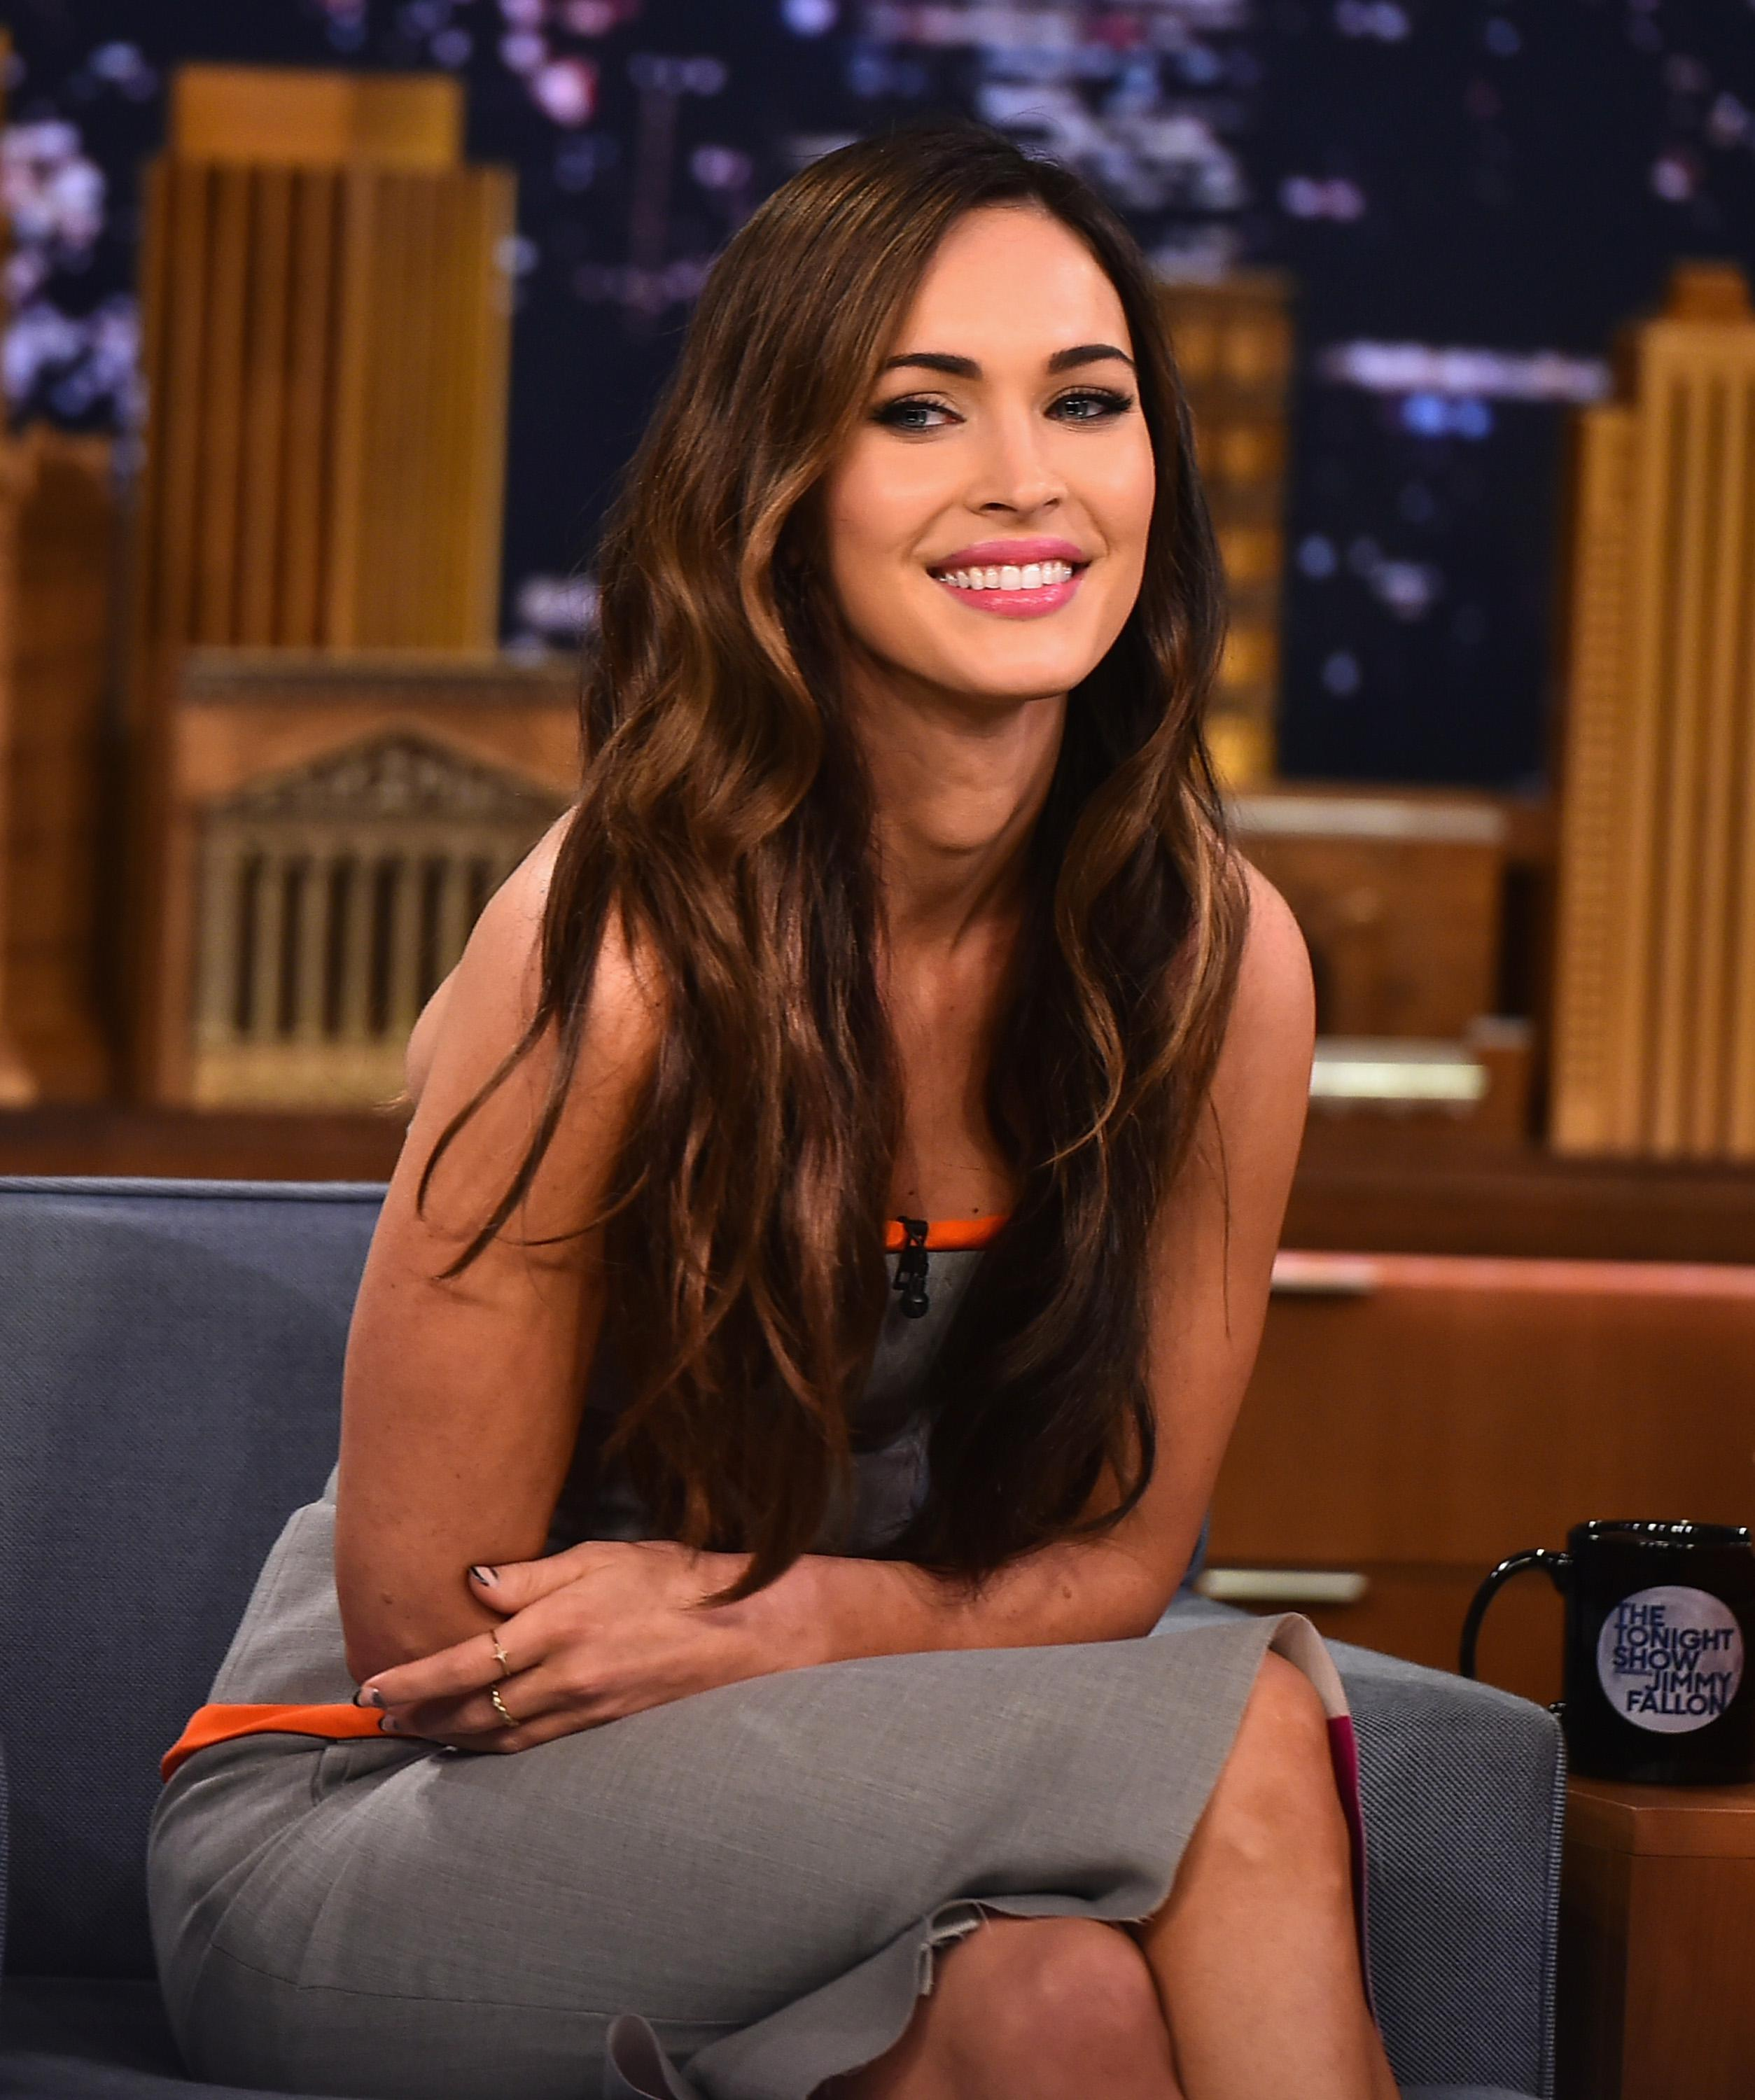 Megan Fox Visits 'The Tonight Show Starring Jimmy Fallon'